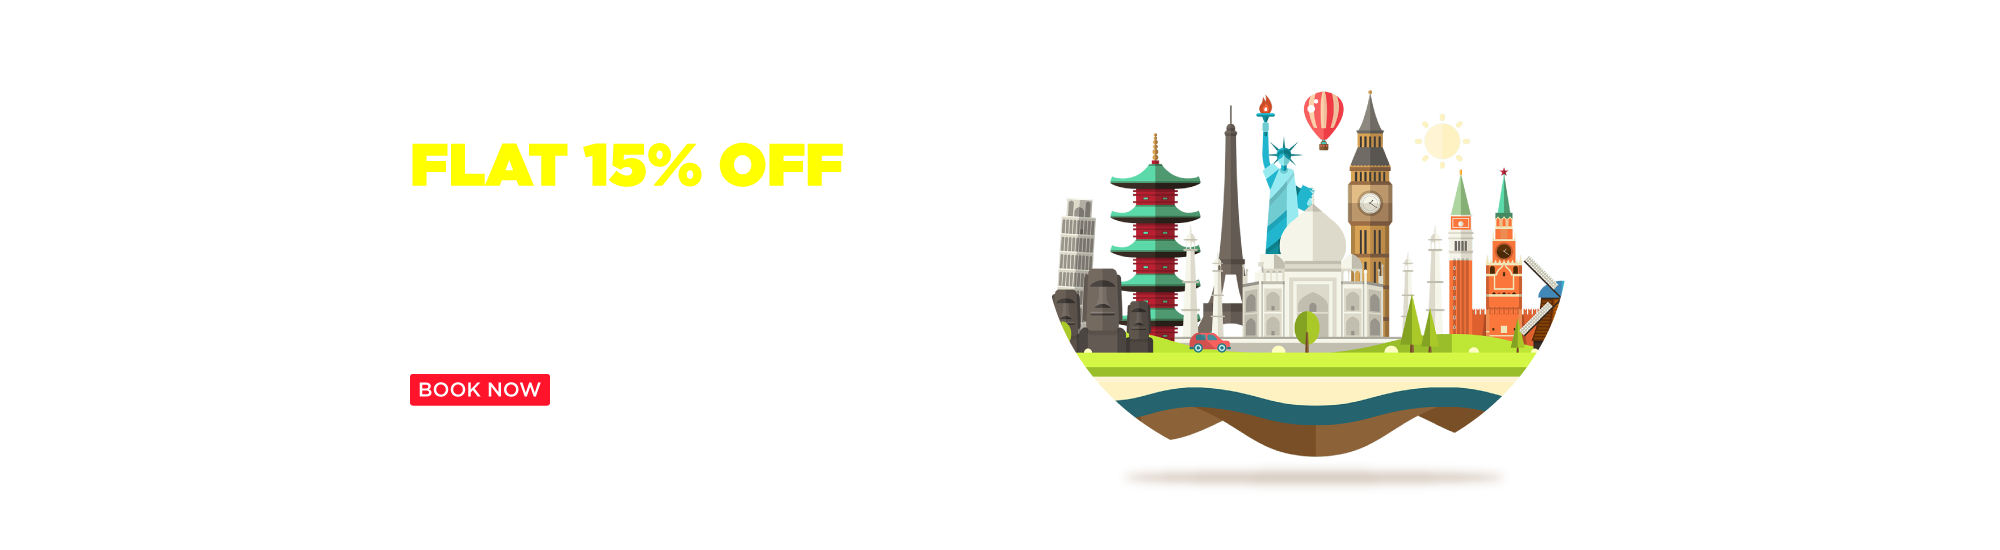 savings-on-your-flight-booking